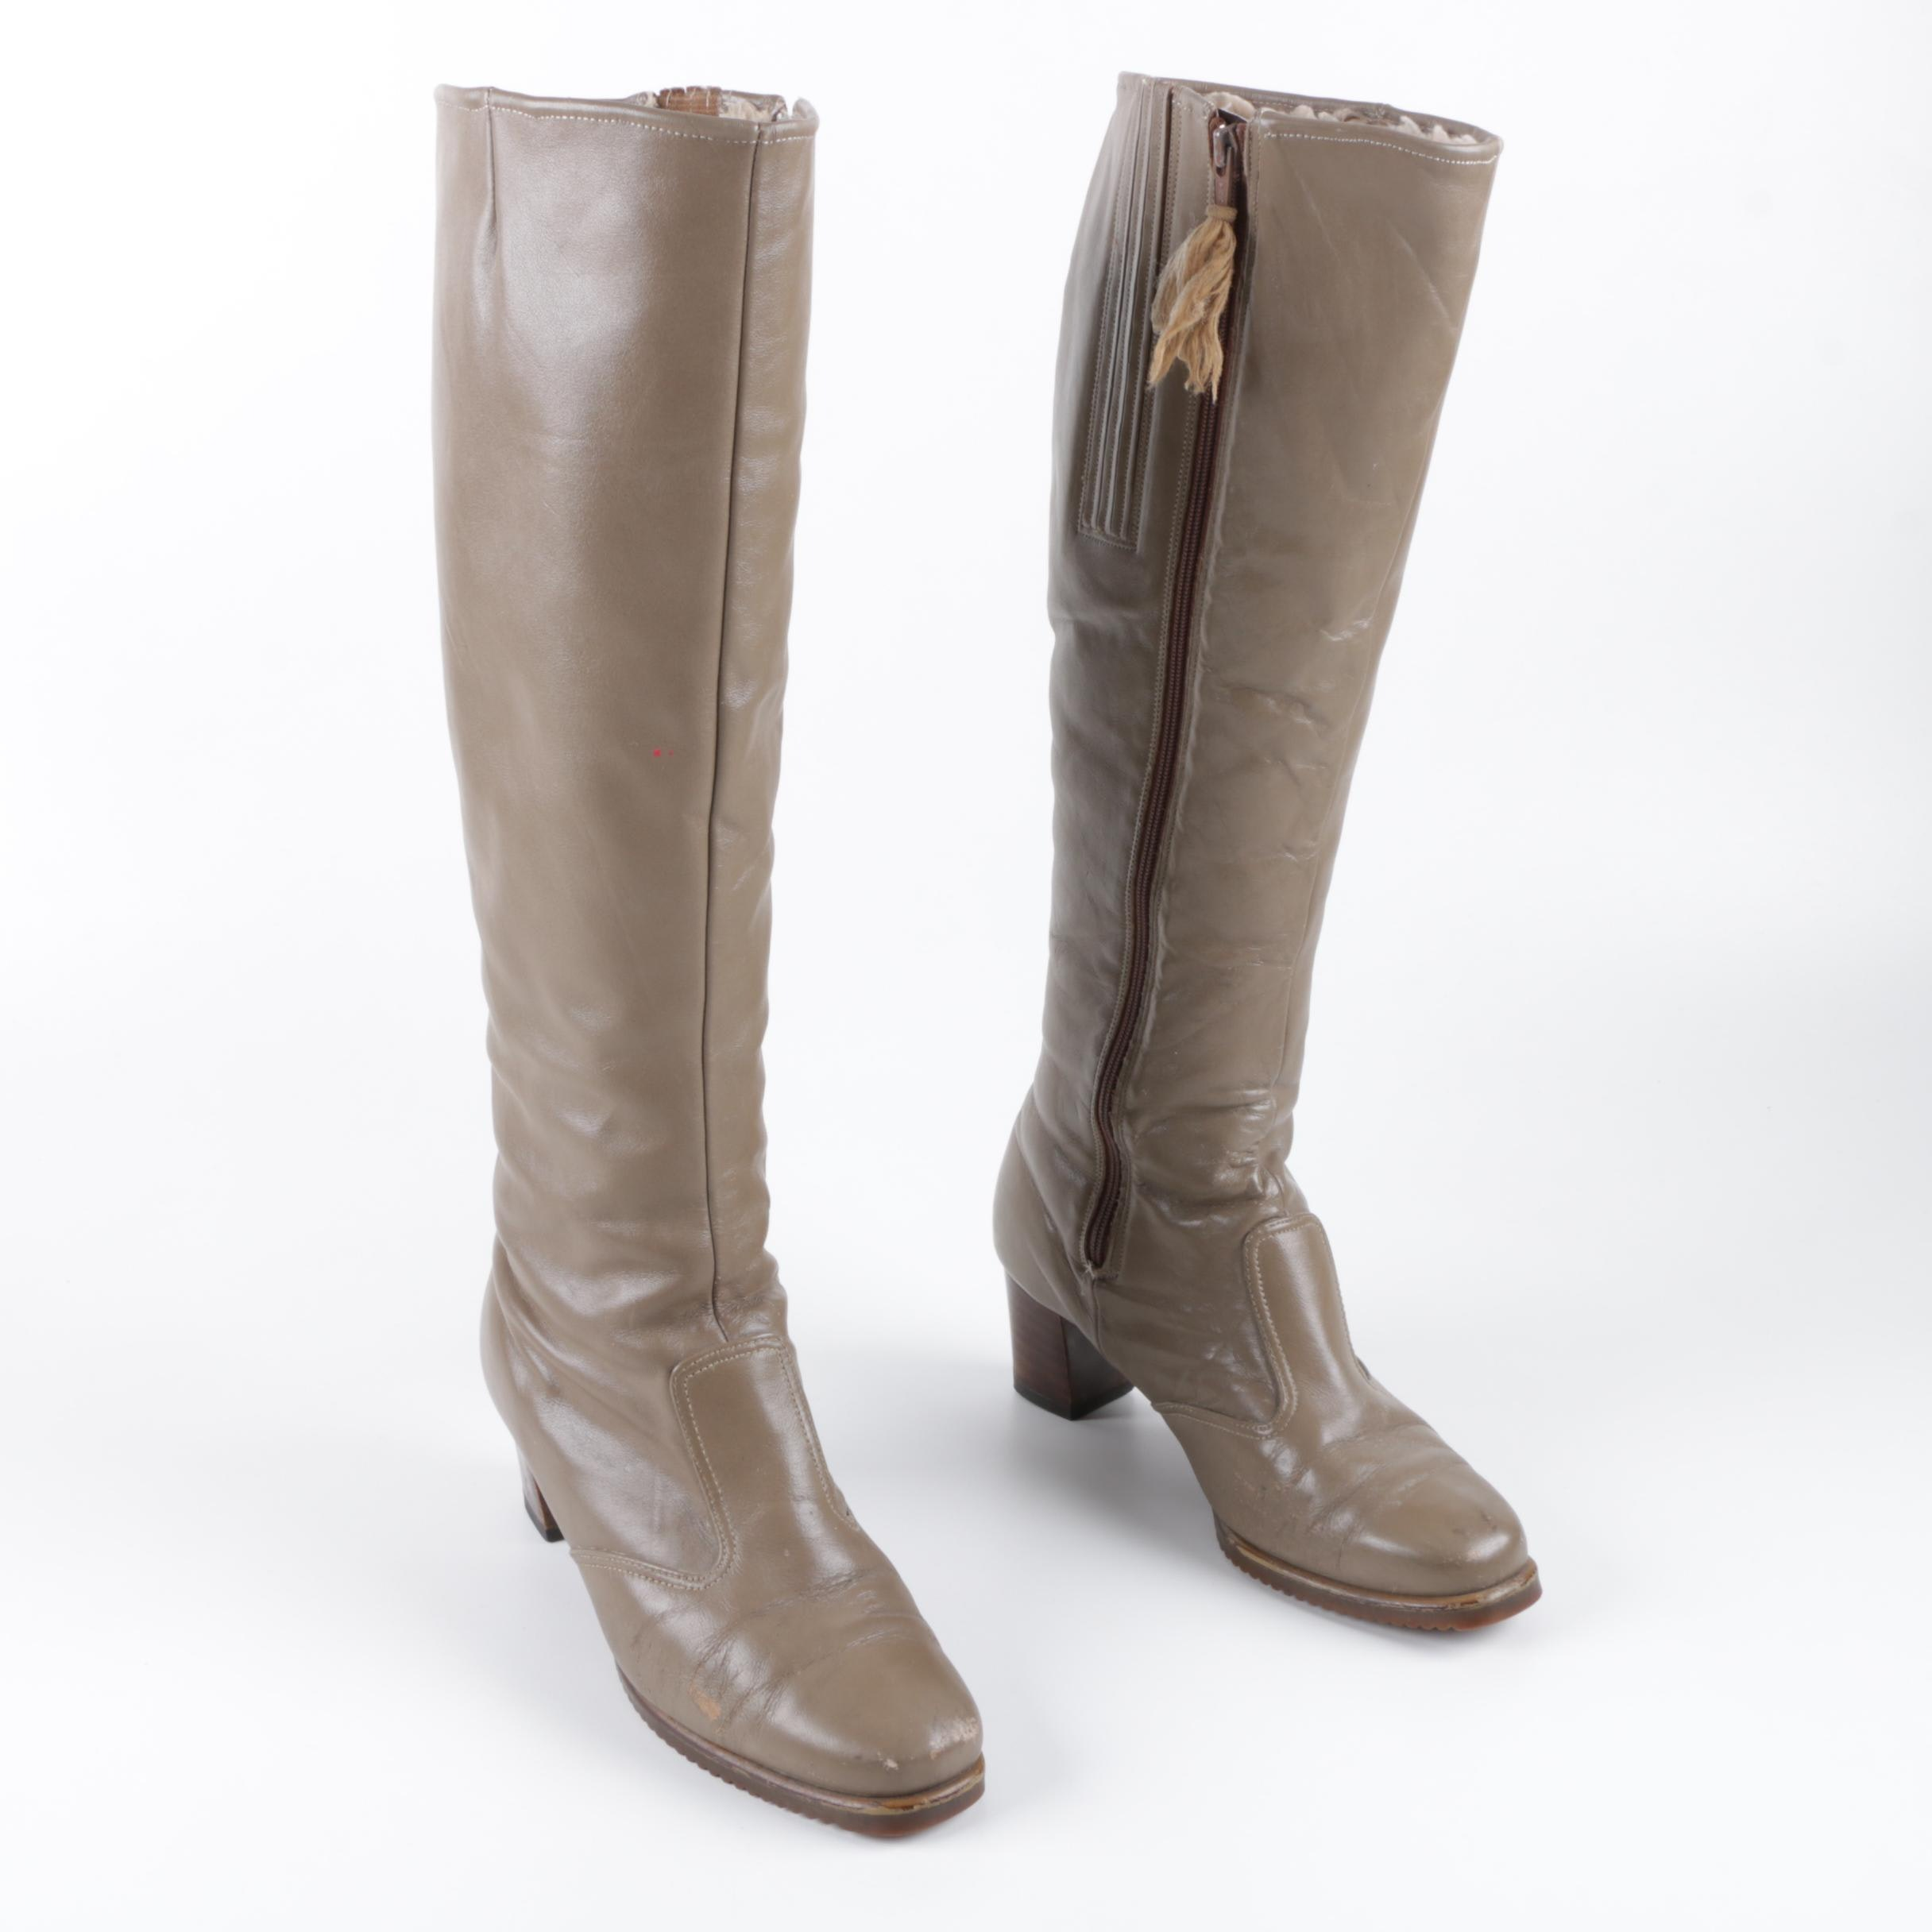 Women's Cobbies Taupe Leather Knee-High Boots with Faux Shearling Liners